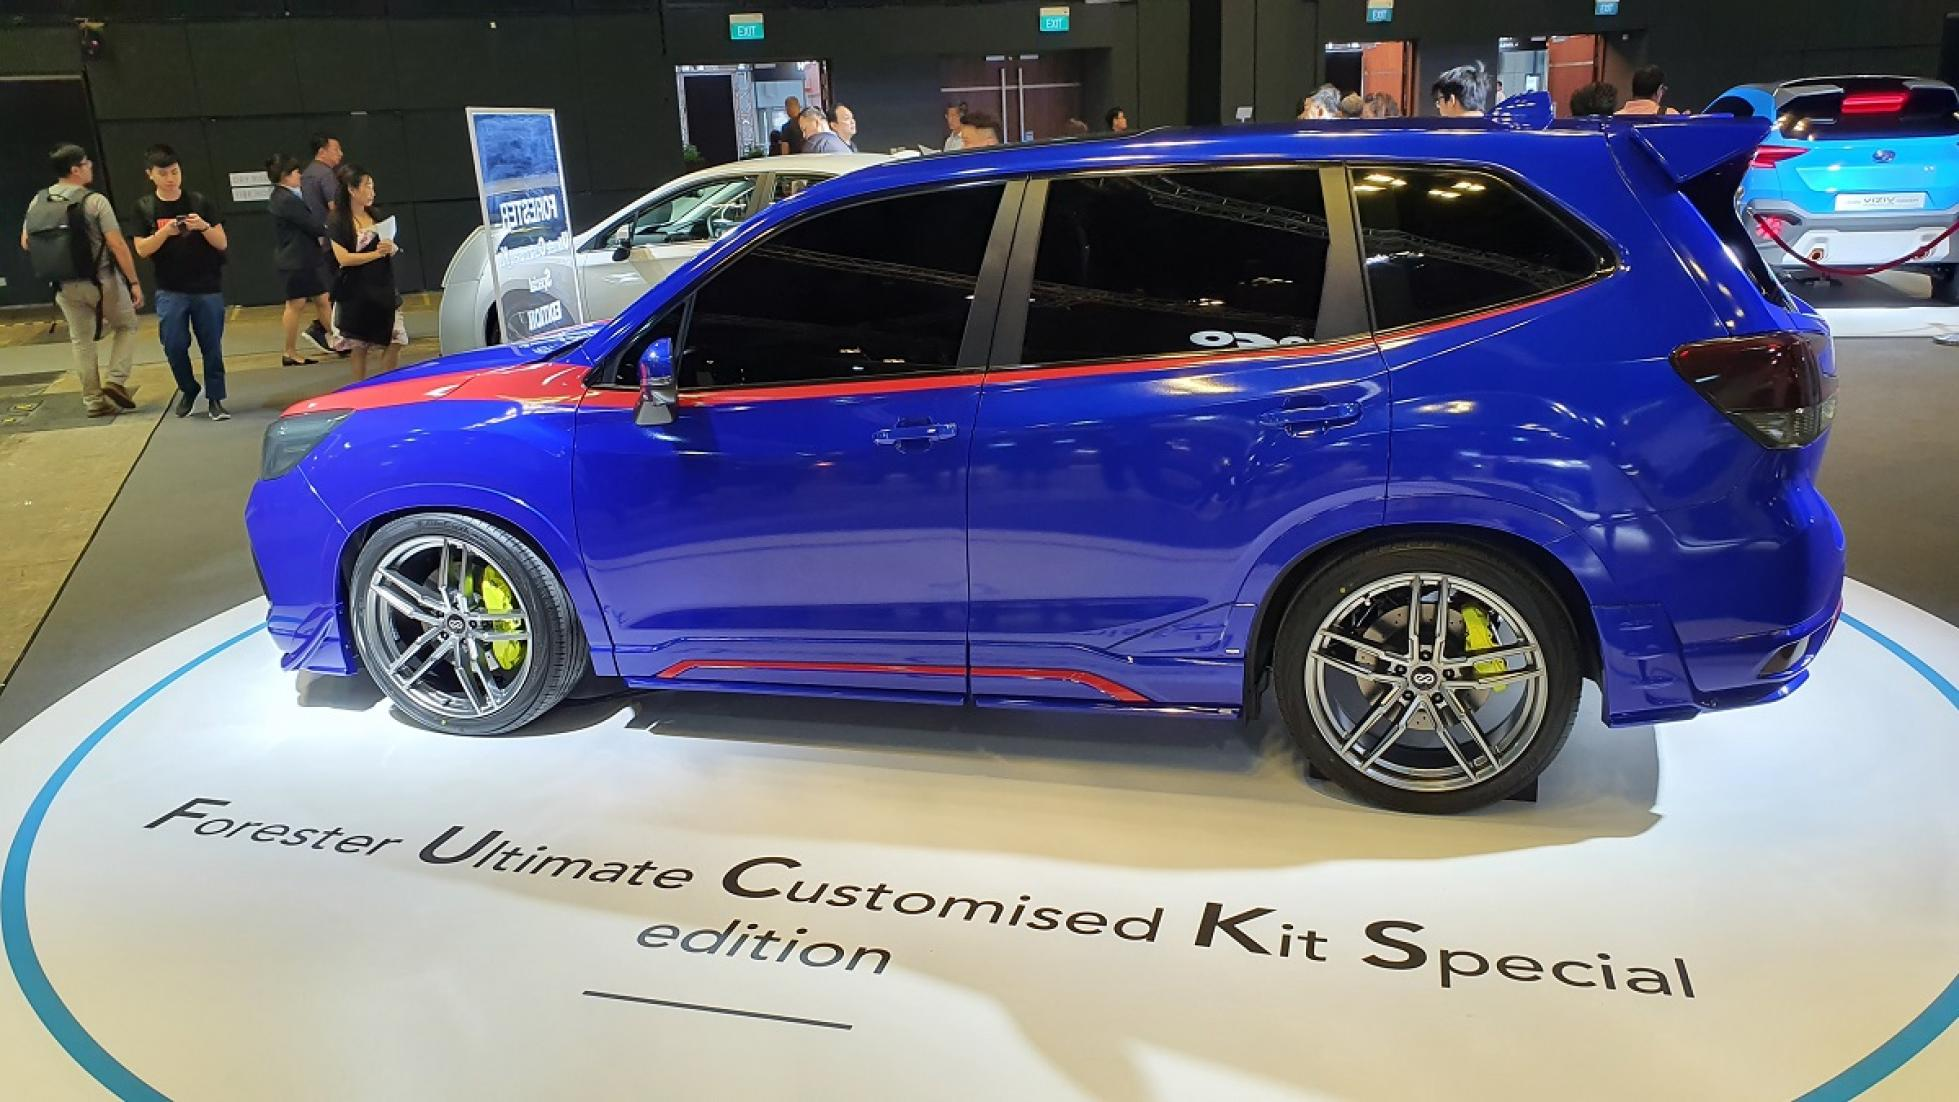 1. Subaru Forester Ultimate Customized Kit Special